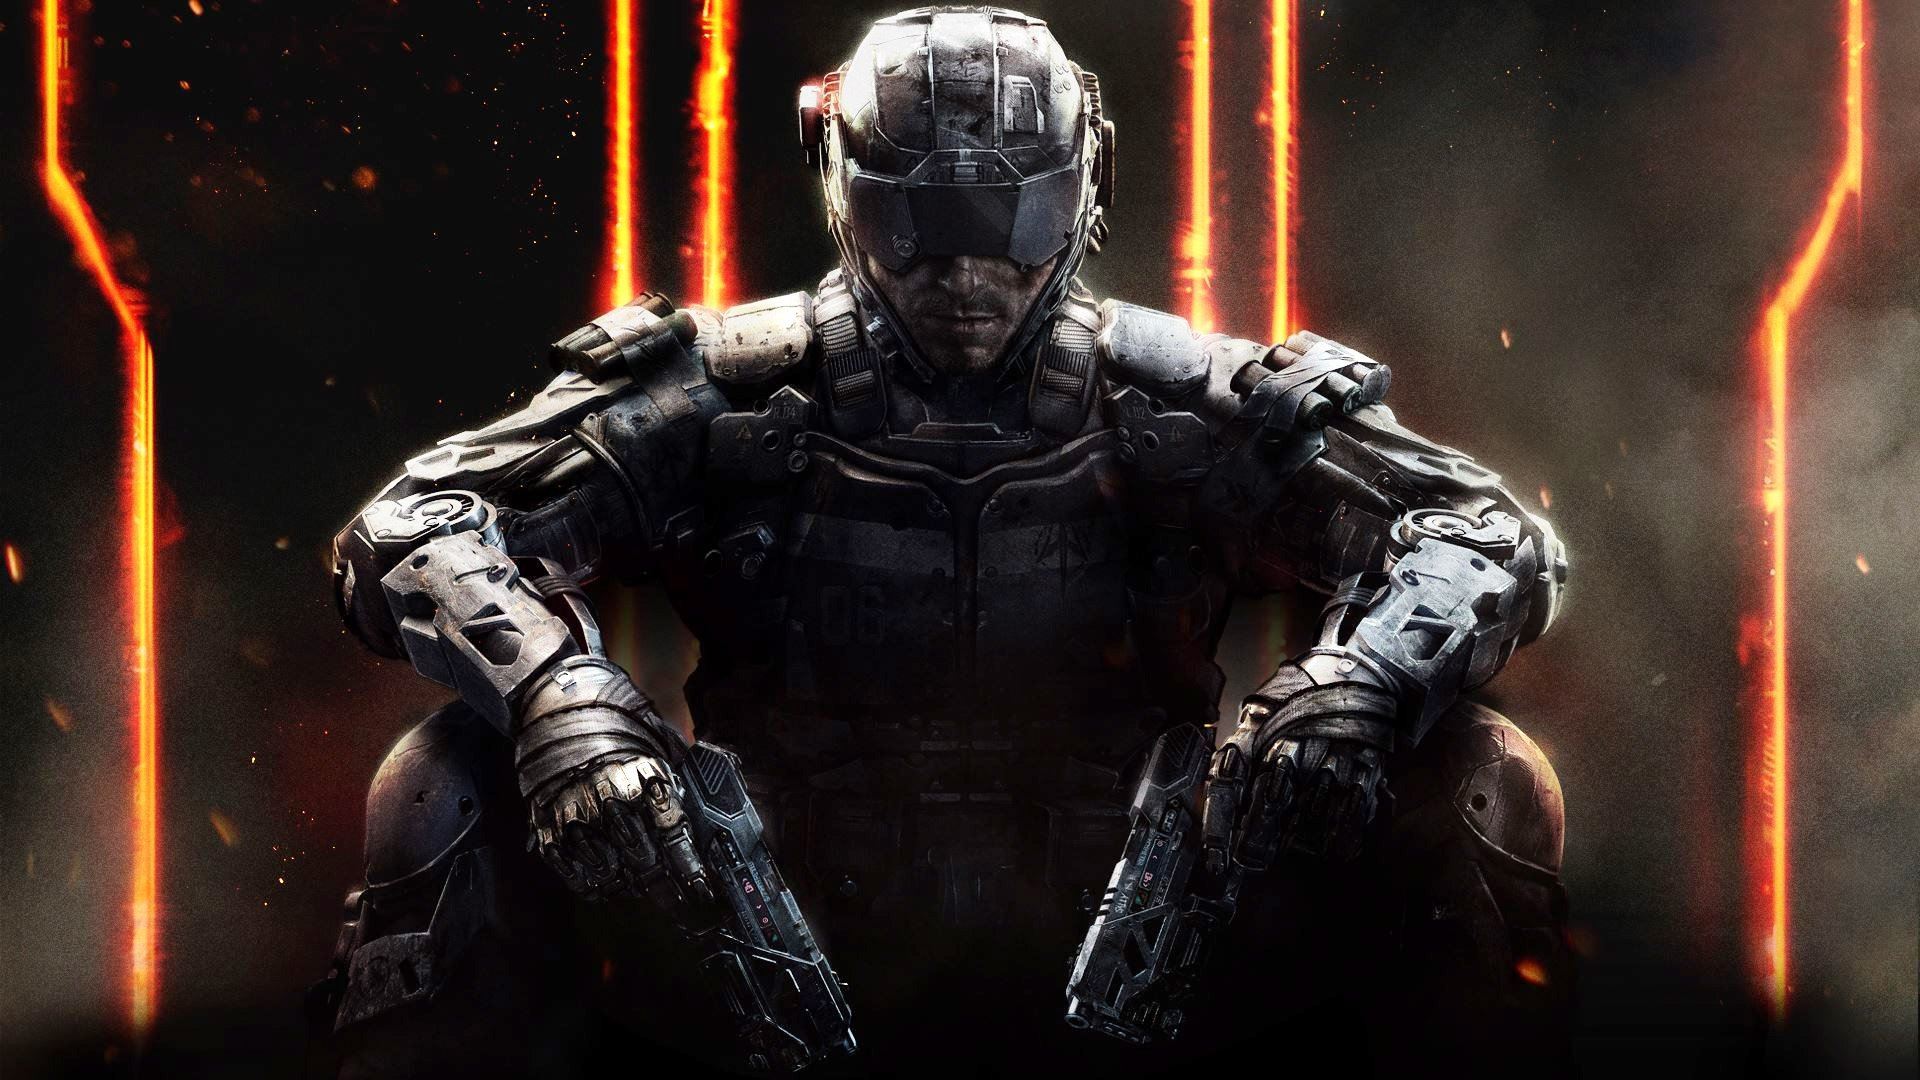 Call Of Duty Black Ops 3 Wallpapers For 1920 1080 Hd Resolution